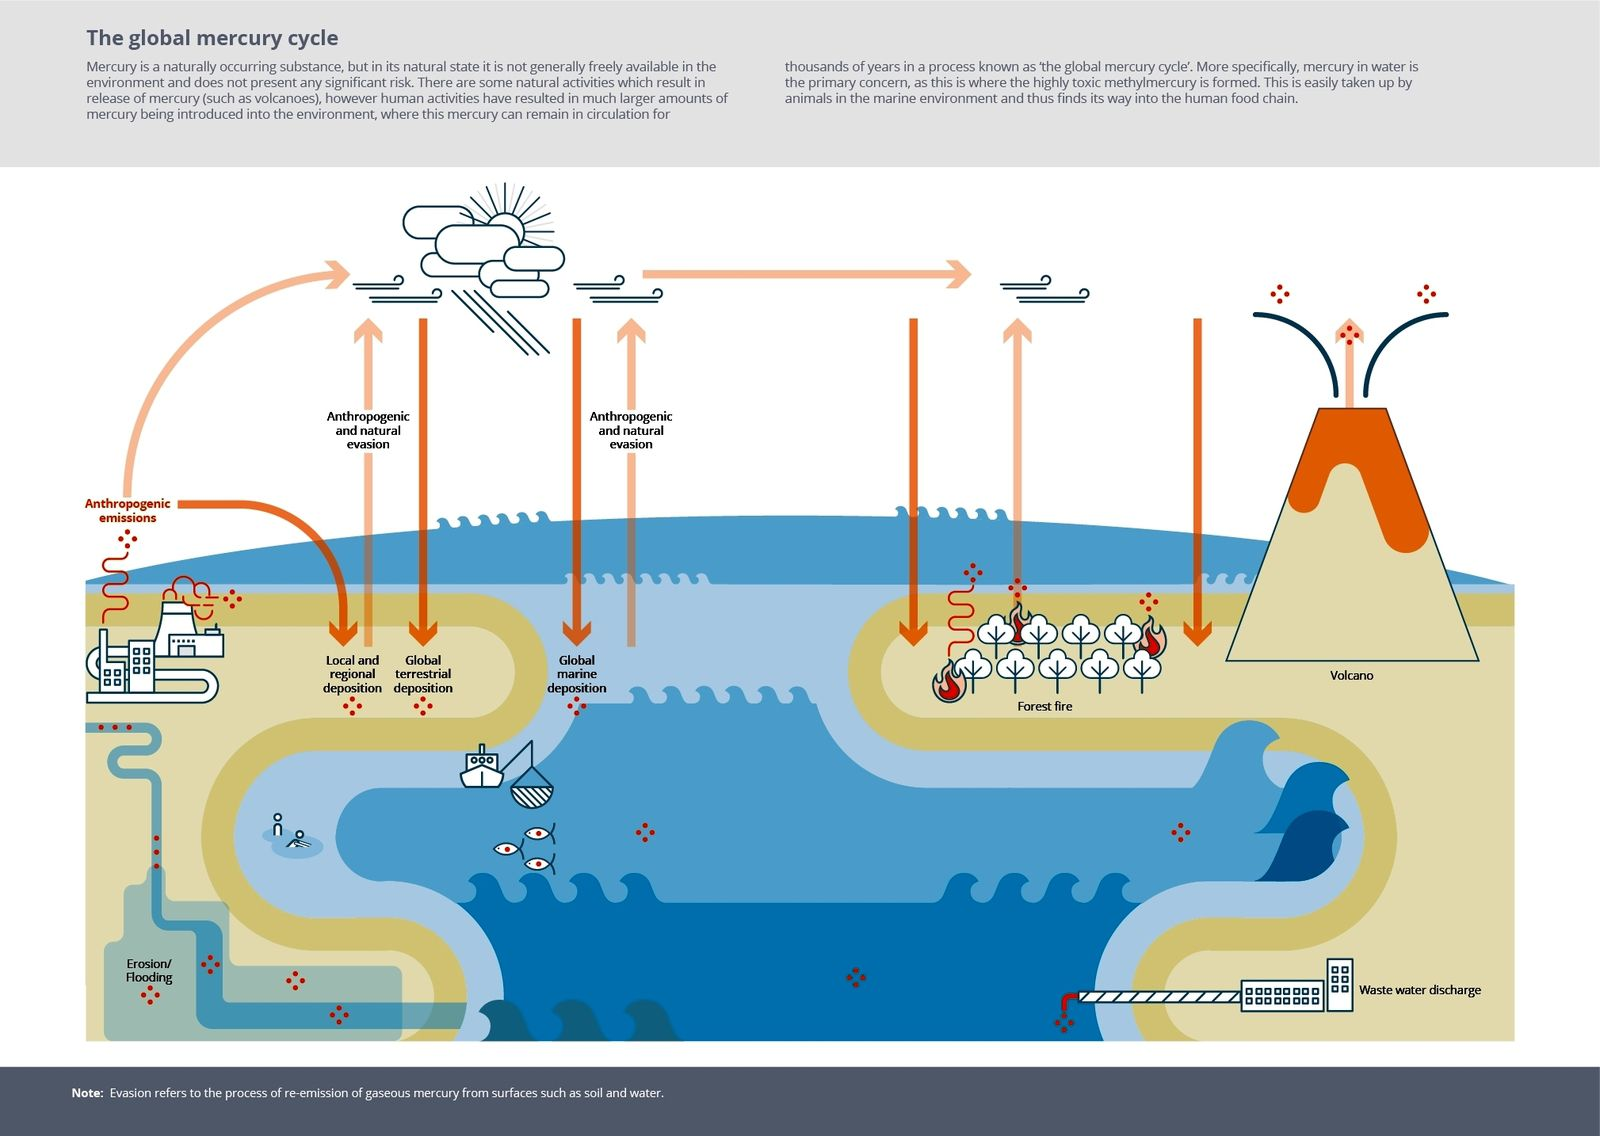 Conceptual diagram of the biogeochemical cycle of mercury in which the different contributions to the terrestrial ecosystem from different sources (natural and anthropogenic) are represented. Image credit: European Environment Agency (EEA) / via INGVvulcani - one click to enlarge